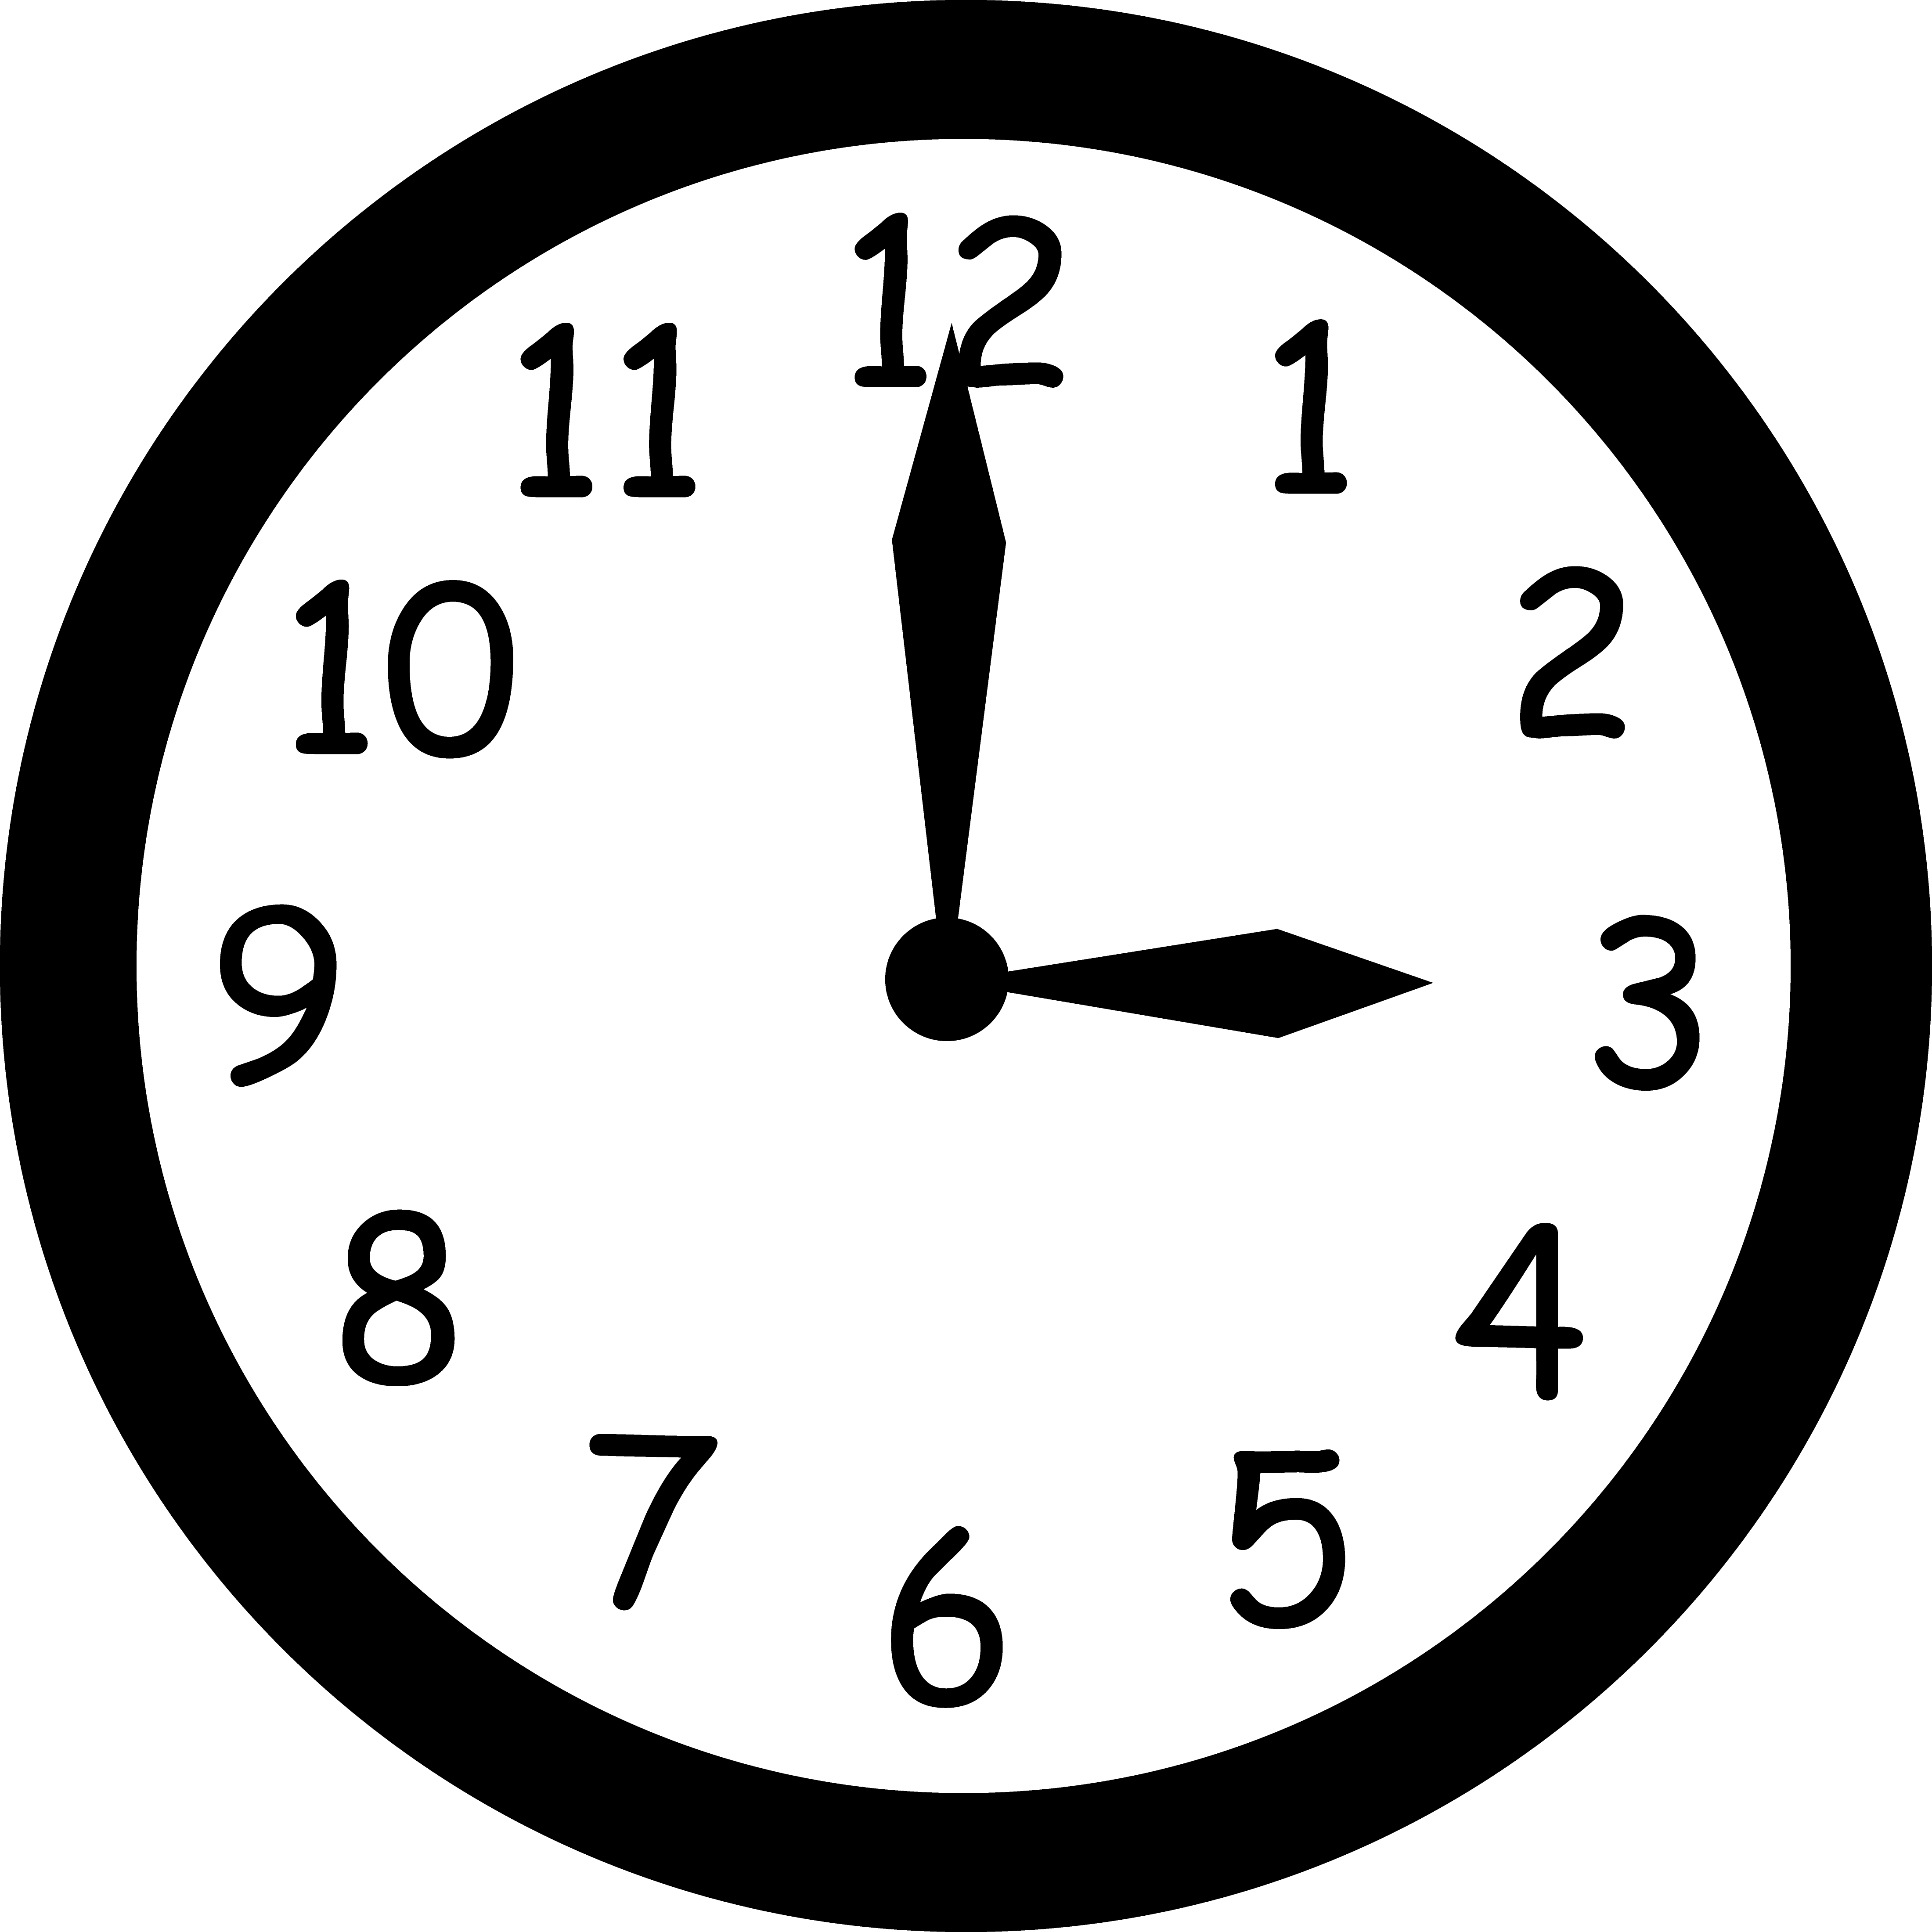 Free Blank Clock Face Printable, Download Free Clip Art.